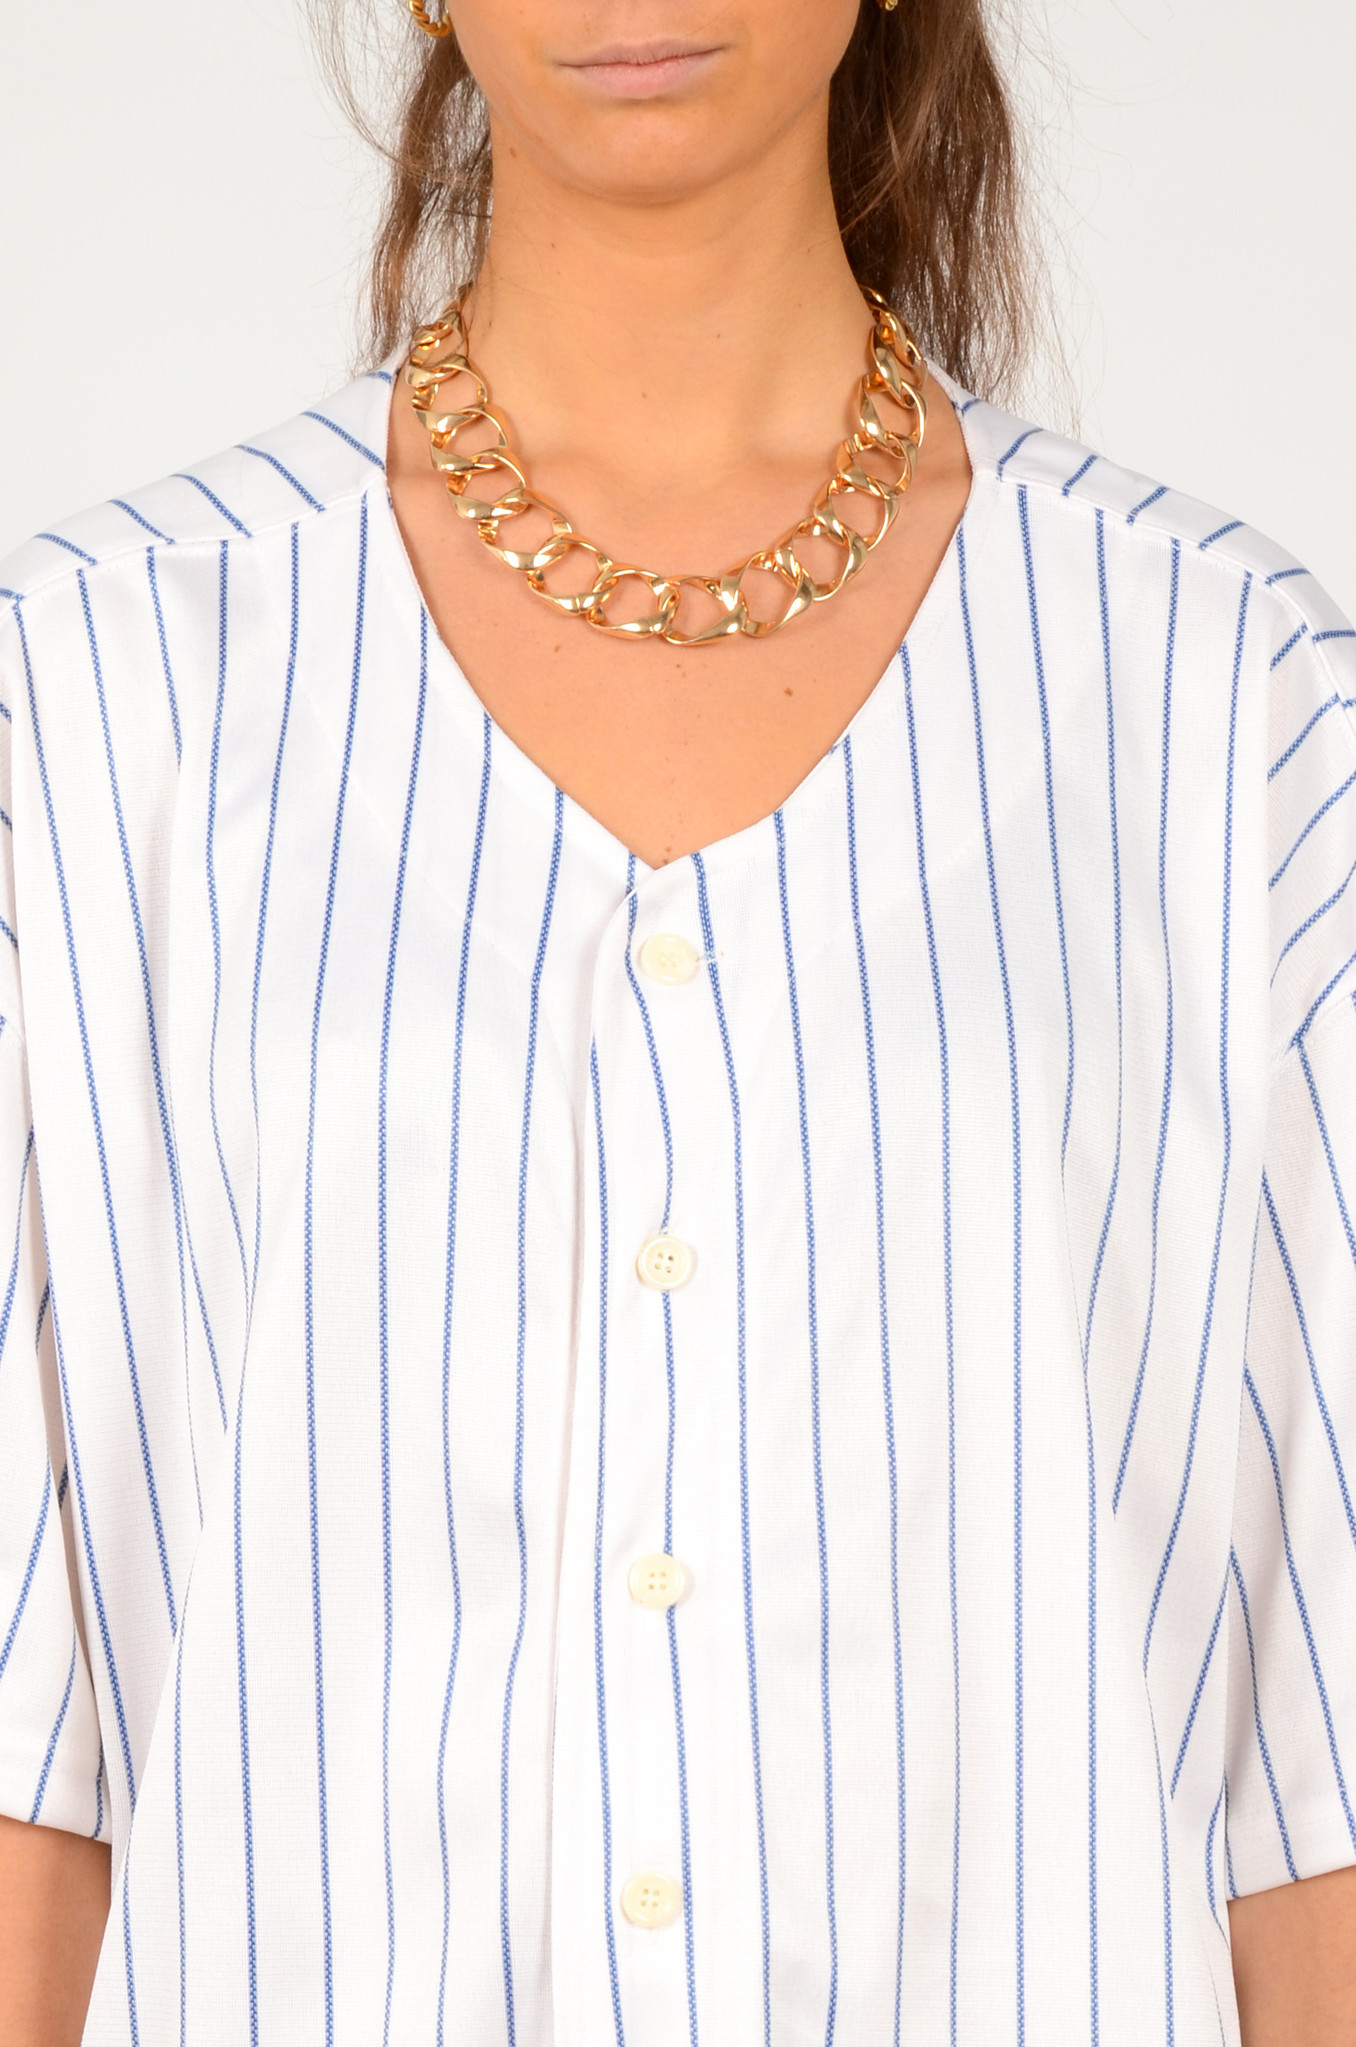 CHUNKY CHAIN NECKLACE-4